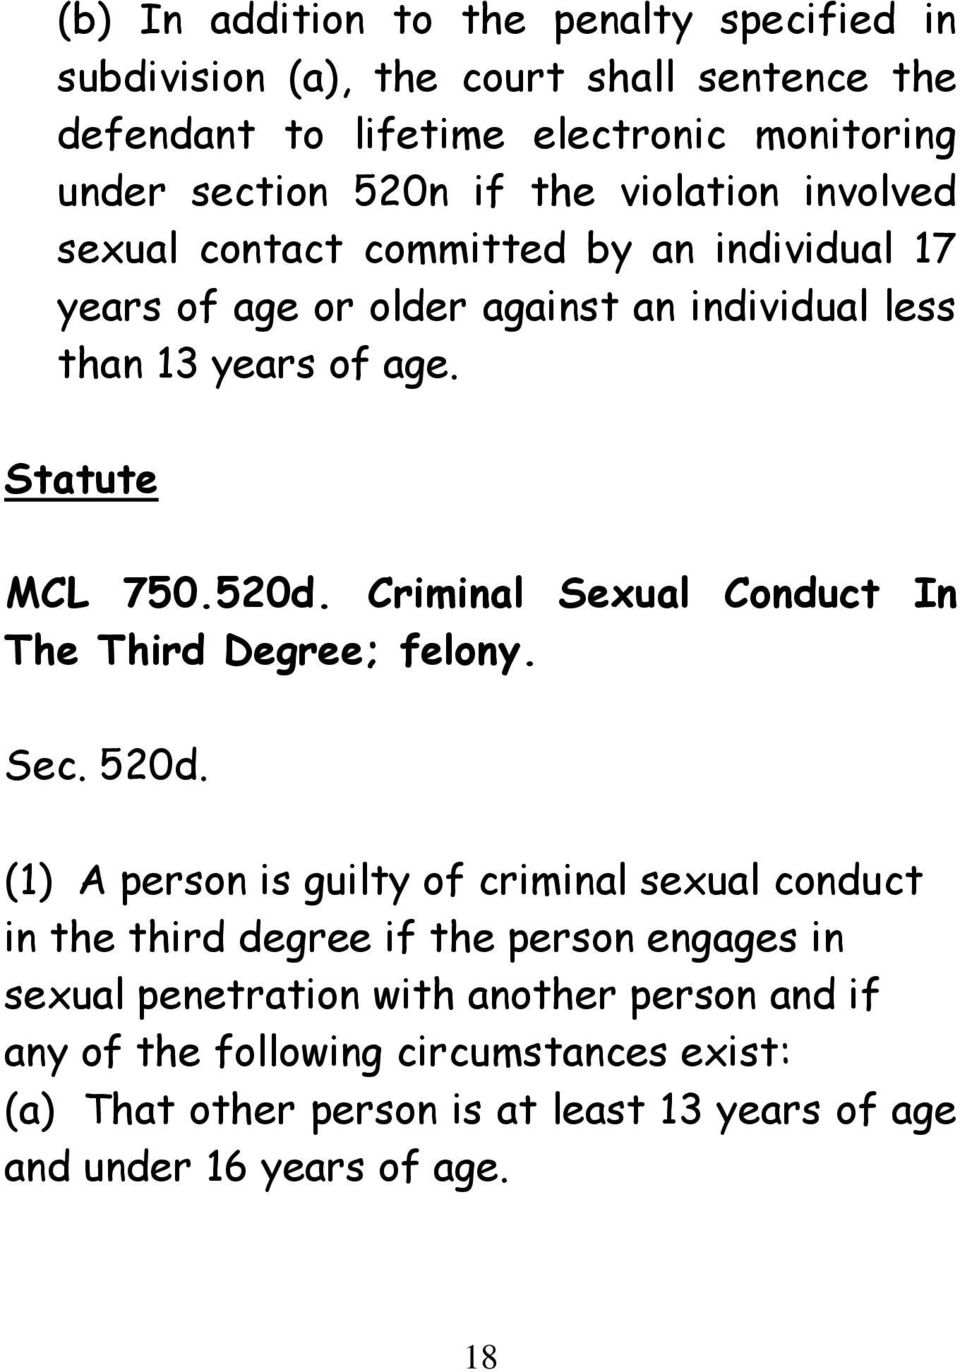 Criminal Sexual Conduct In The Third Degree; felony. Sec. 520d.